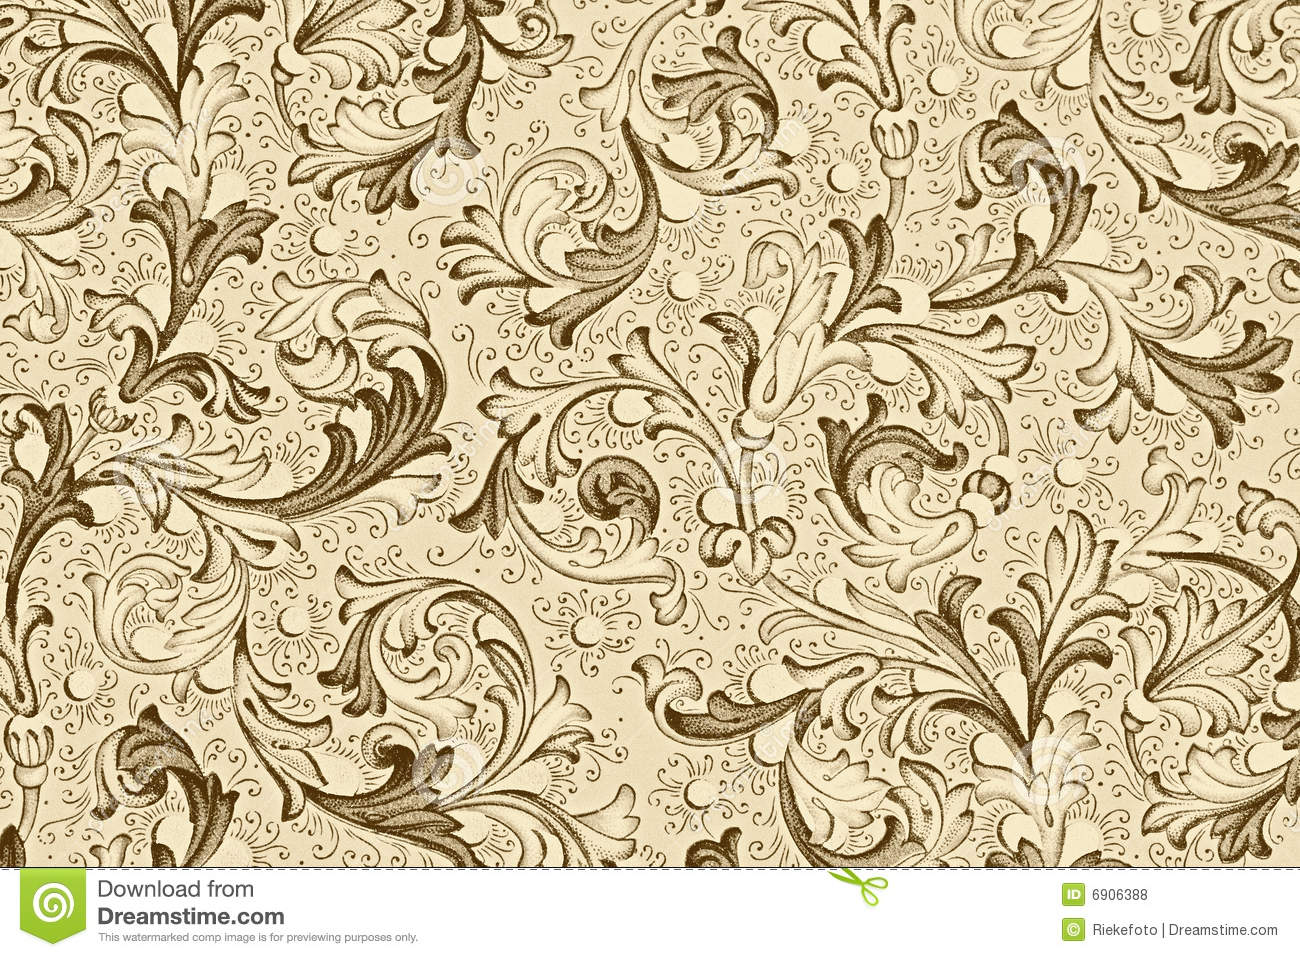 Vintage Floral Patterns   HD Wallpapers Pretty 1300x957